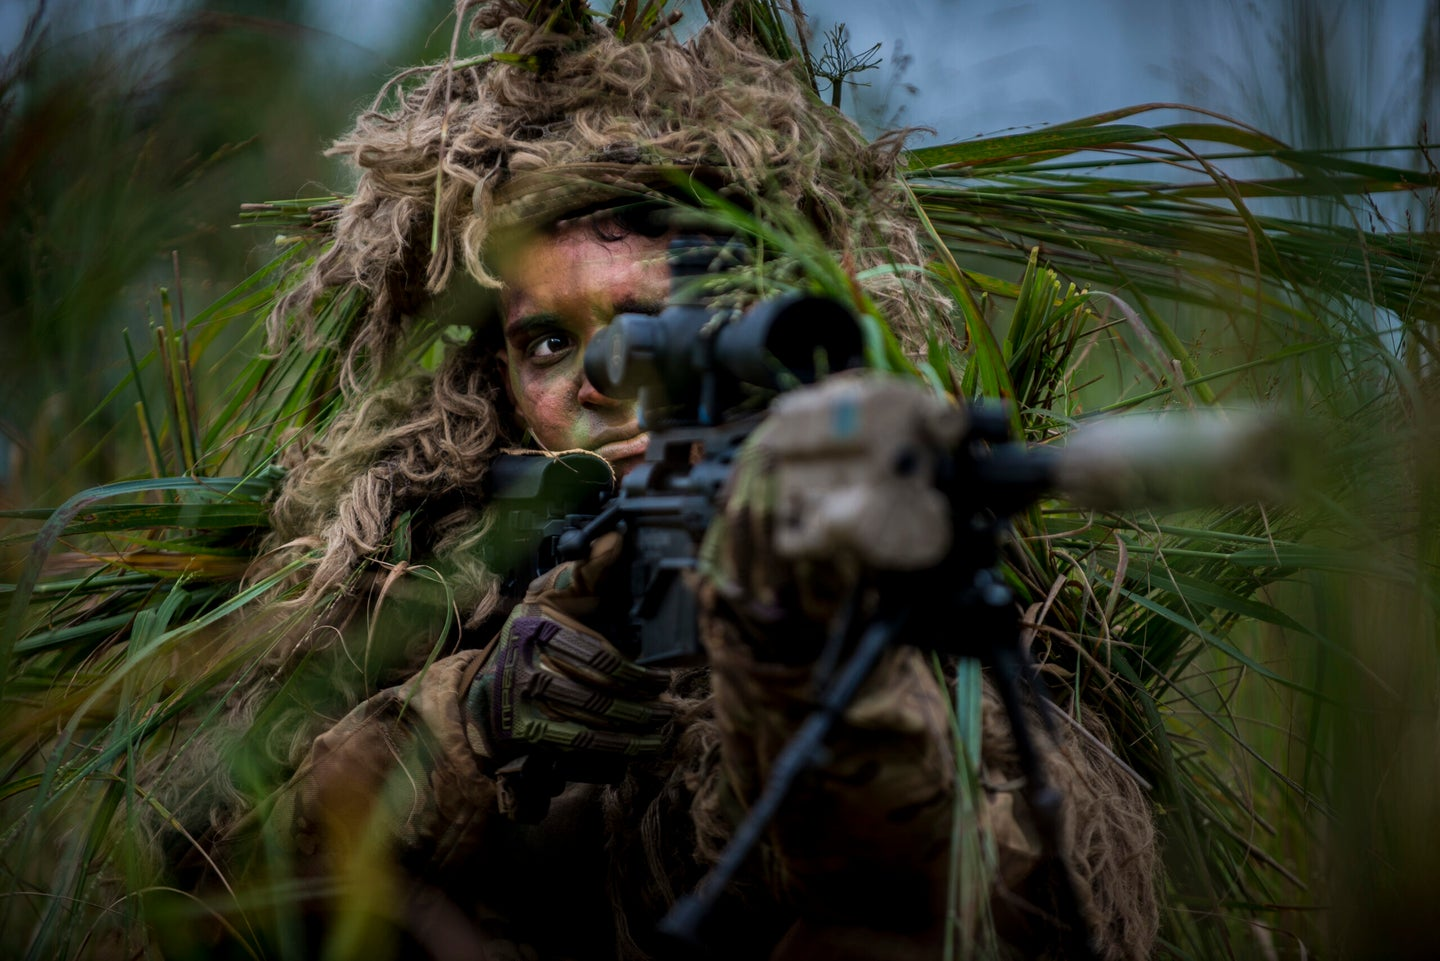 Inside the mind of an Army sniper